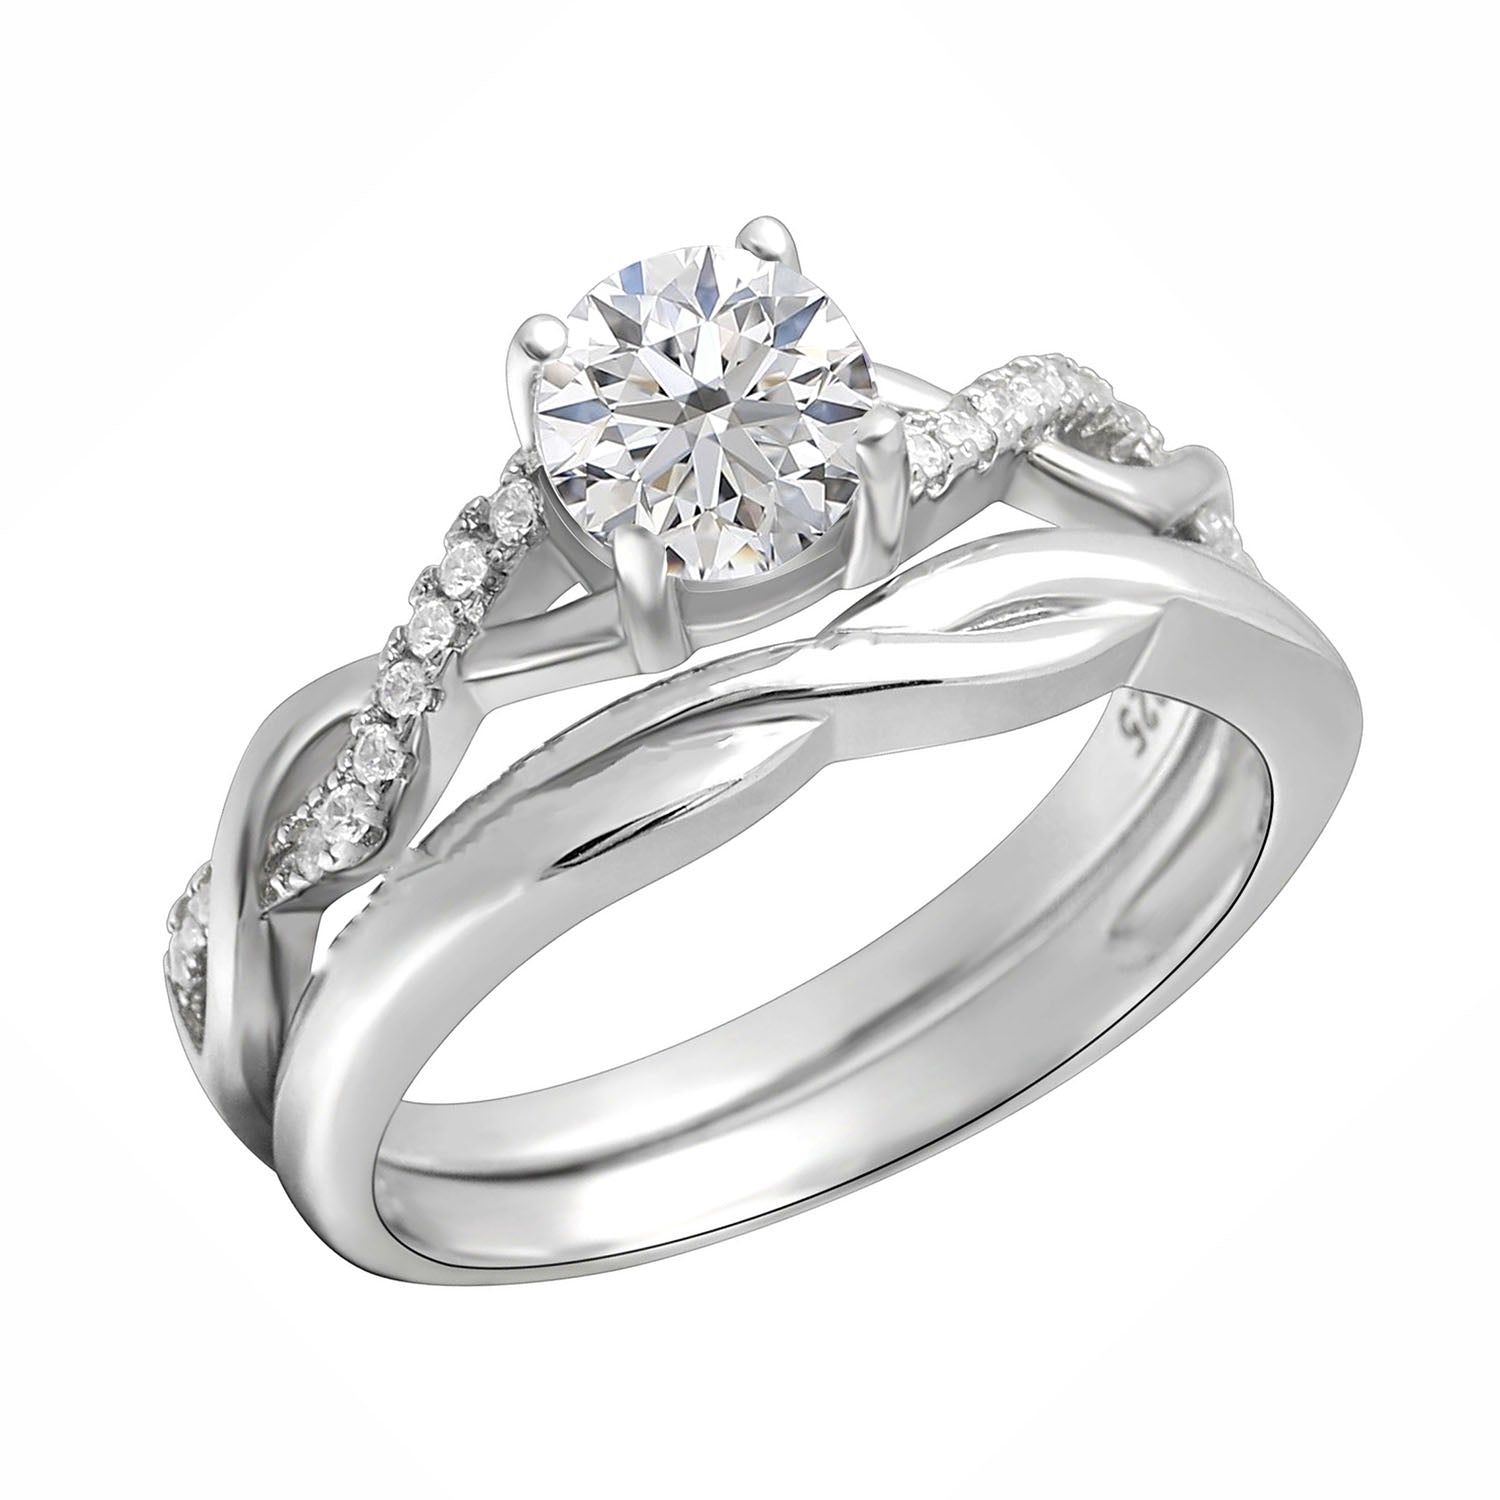 Queena Bridal Wedding Ring Set for Women Sterling Silver Twist Vine Setting with 1 Carat Cubic Zirconia Engagement and Band by Ginger Lyne Collection